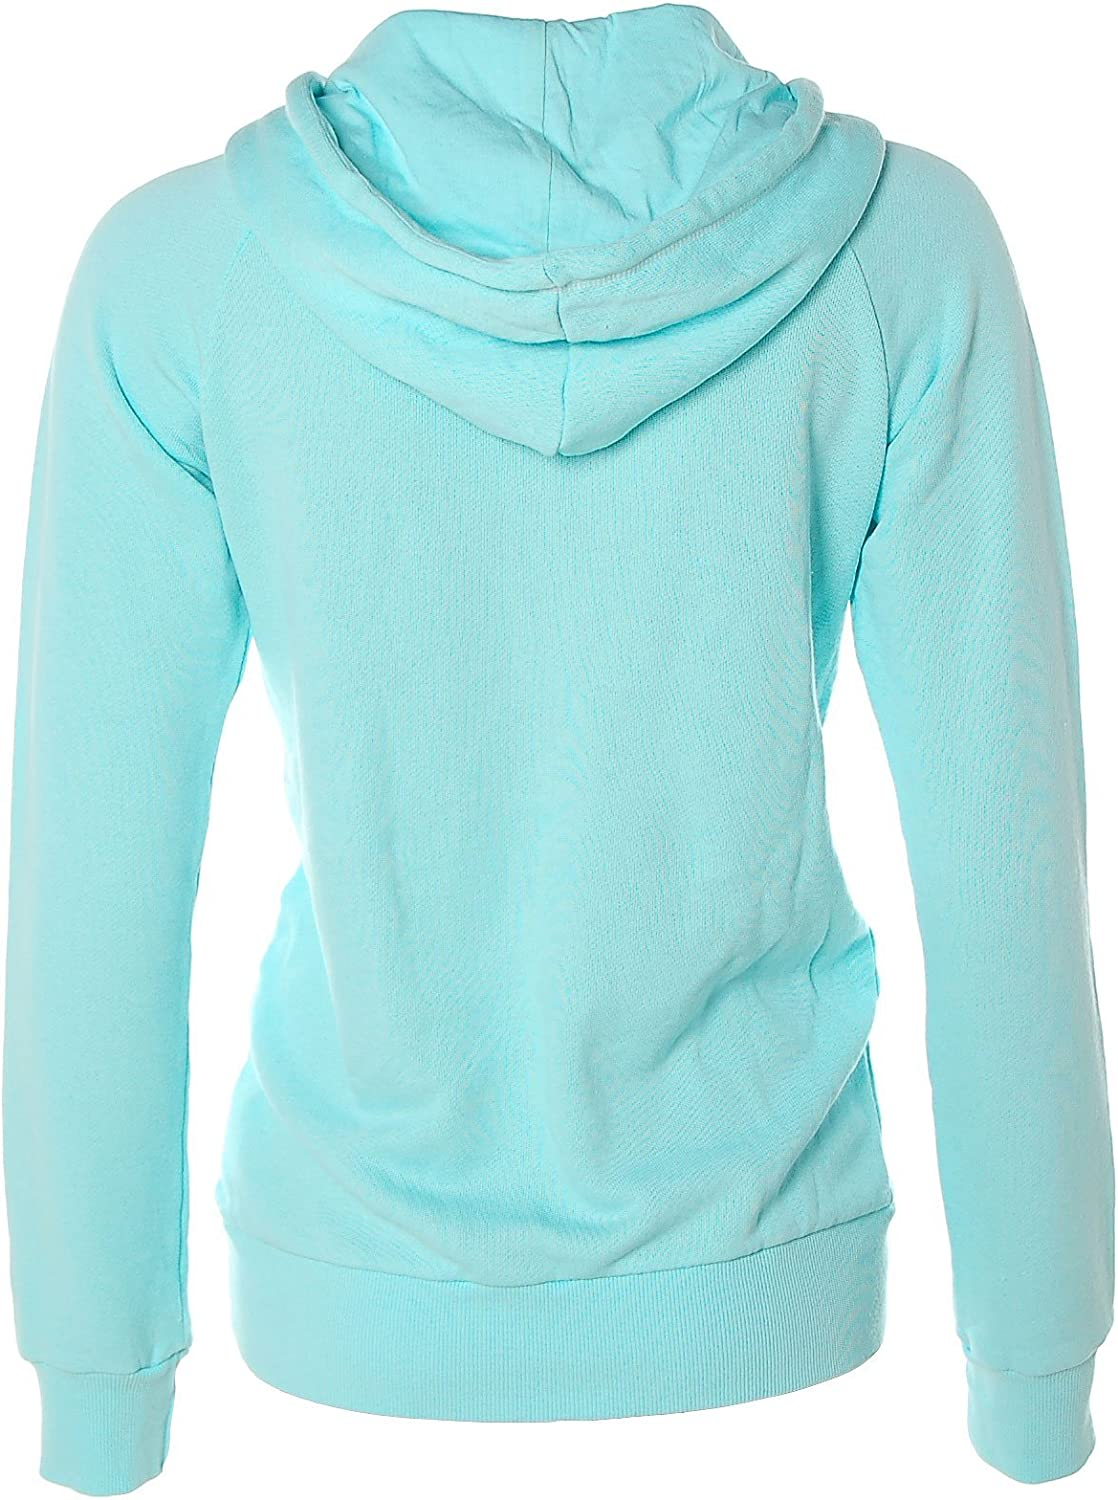 Billabong Damen Sweatshirt Palme Blau